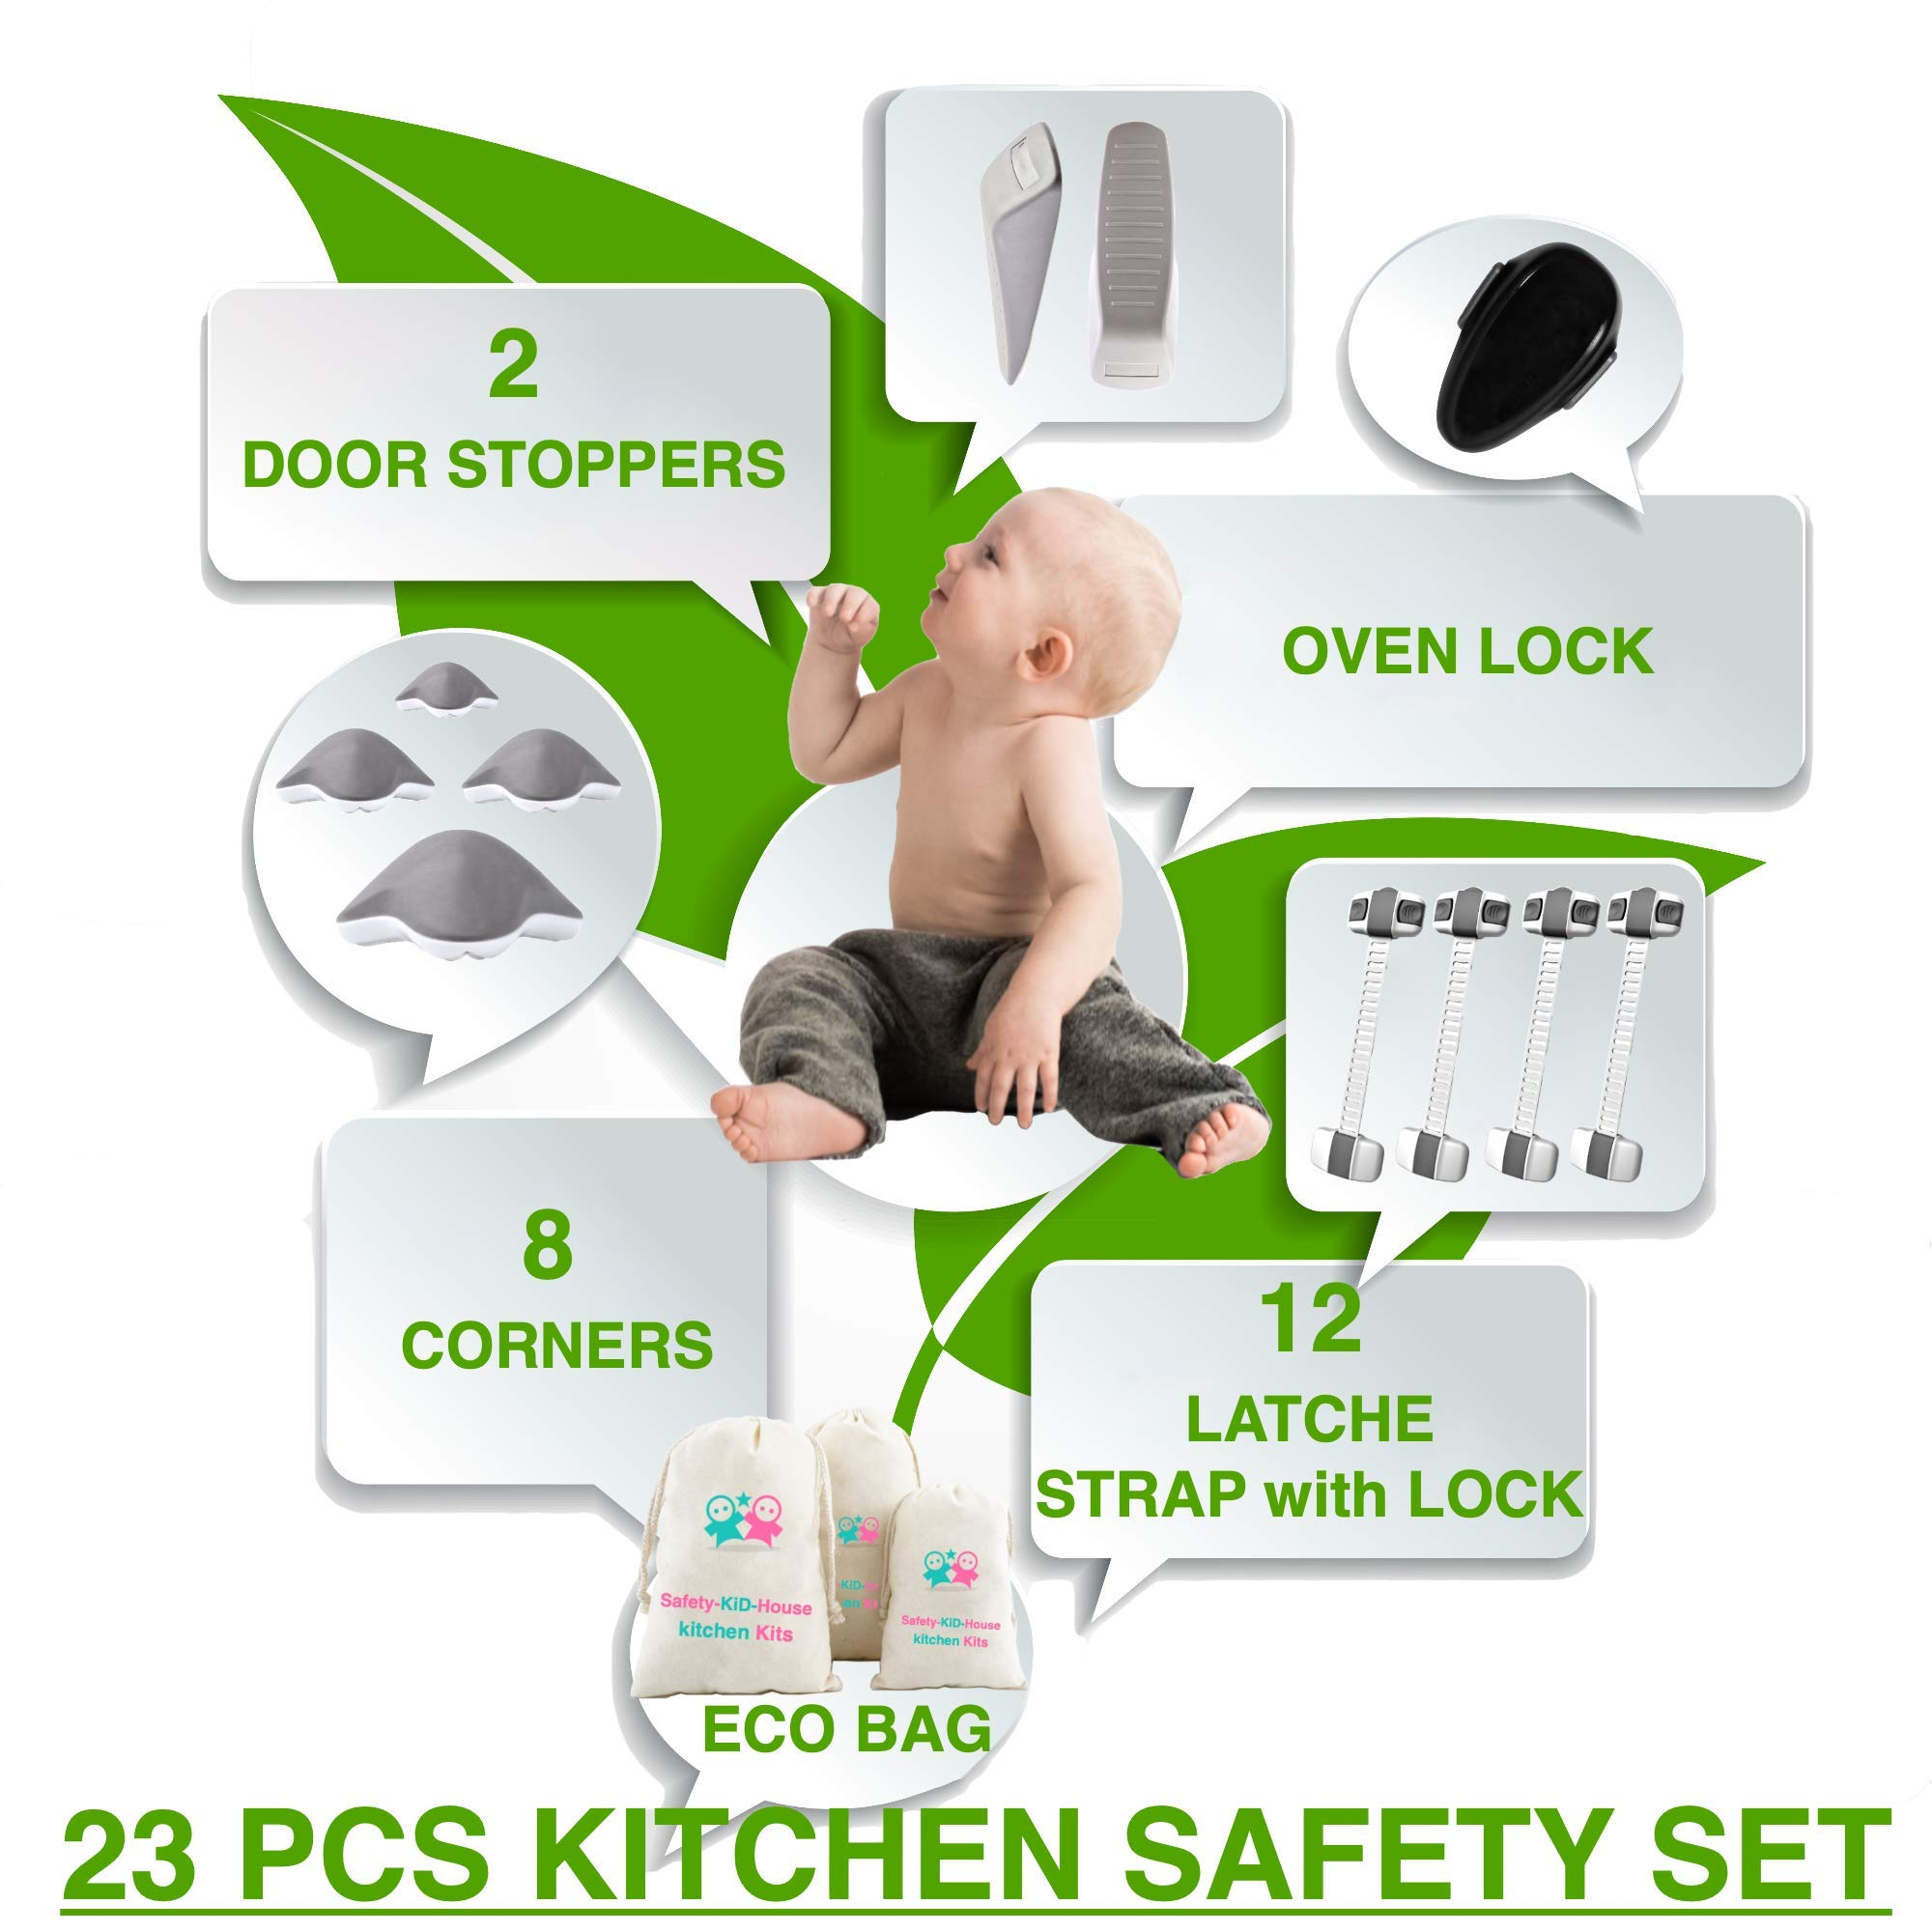 Baby Safety Set of Child Safety Cabinet Locks, Corner Protector, Door Wedge, Oven Lock - Essentials Items for Baby Proofing